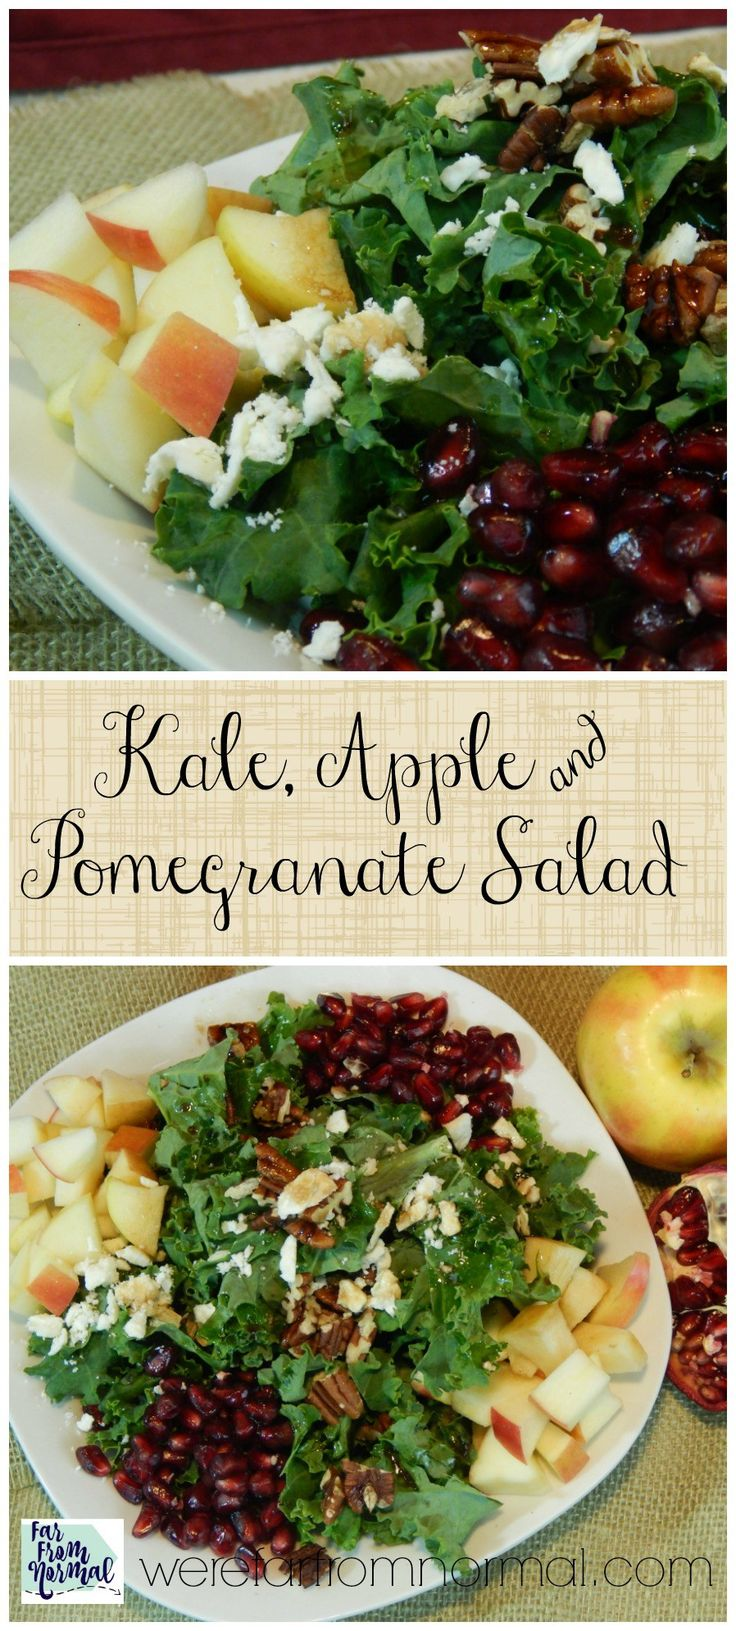 Delicious Kale Salad With Apples and Pomegranate #kale #pomegranate #salad #healthy